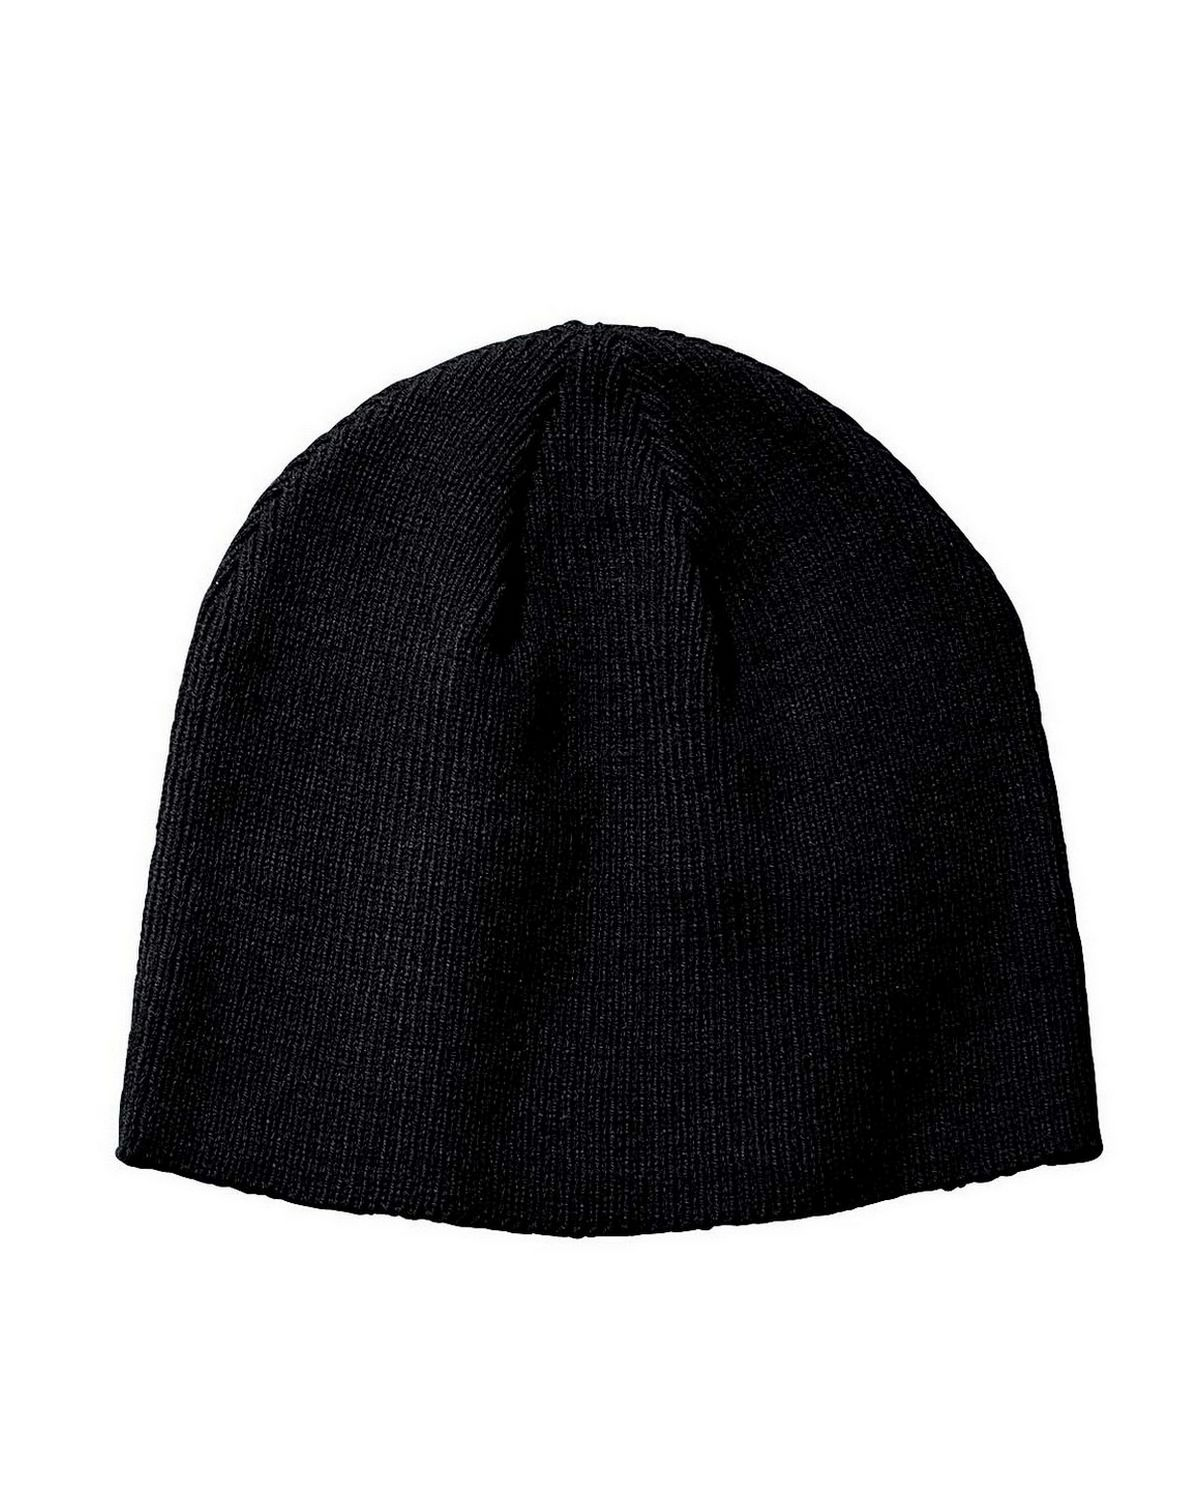 Big Accessories BX026 Knit Beanie - Grey - One Size BX026